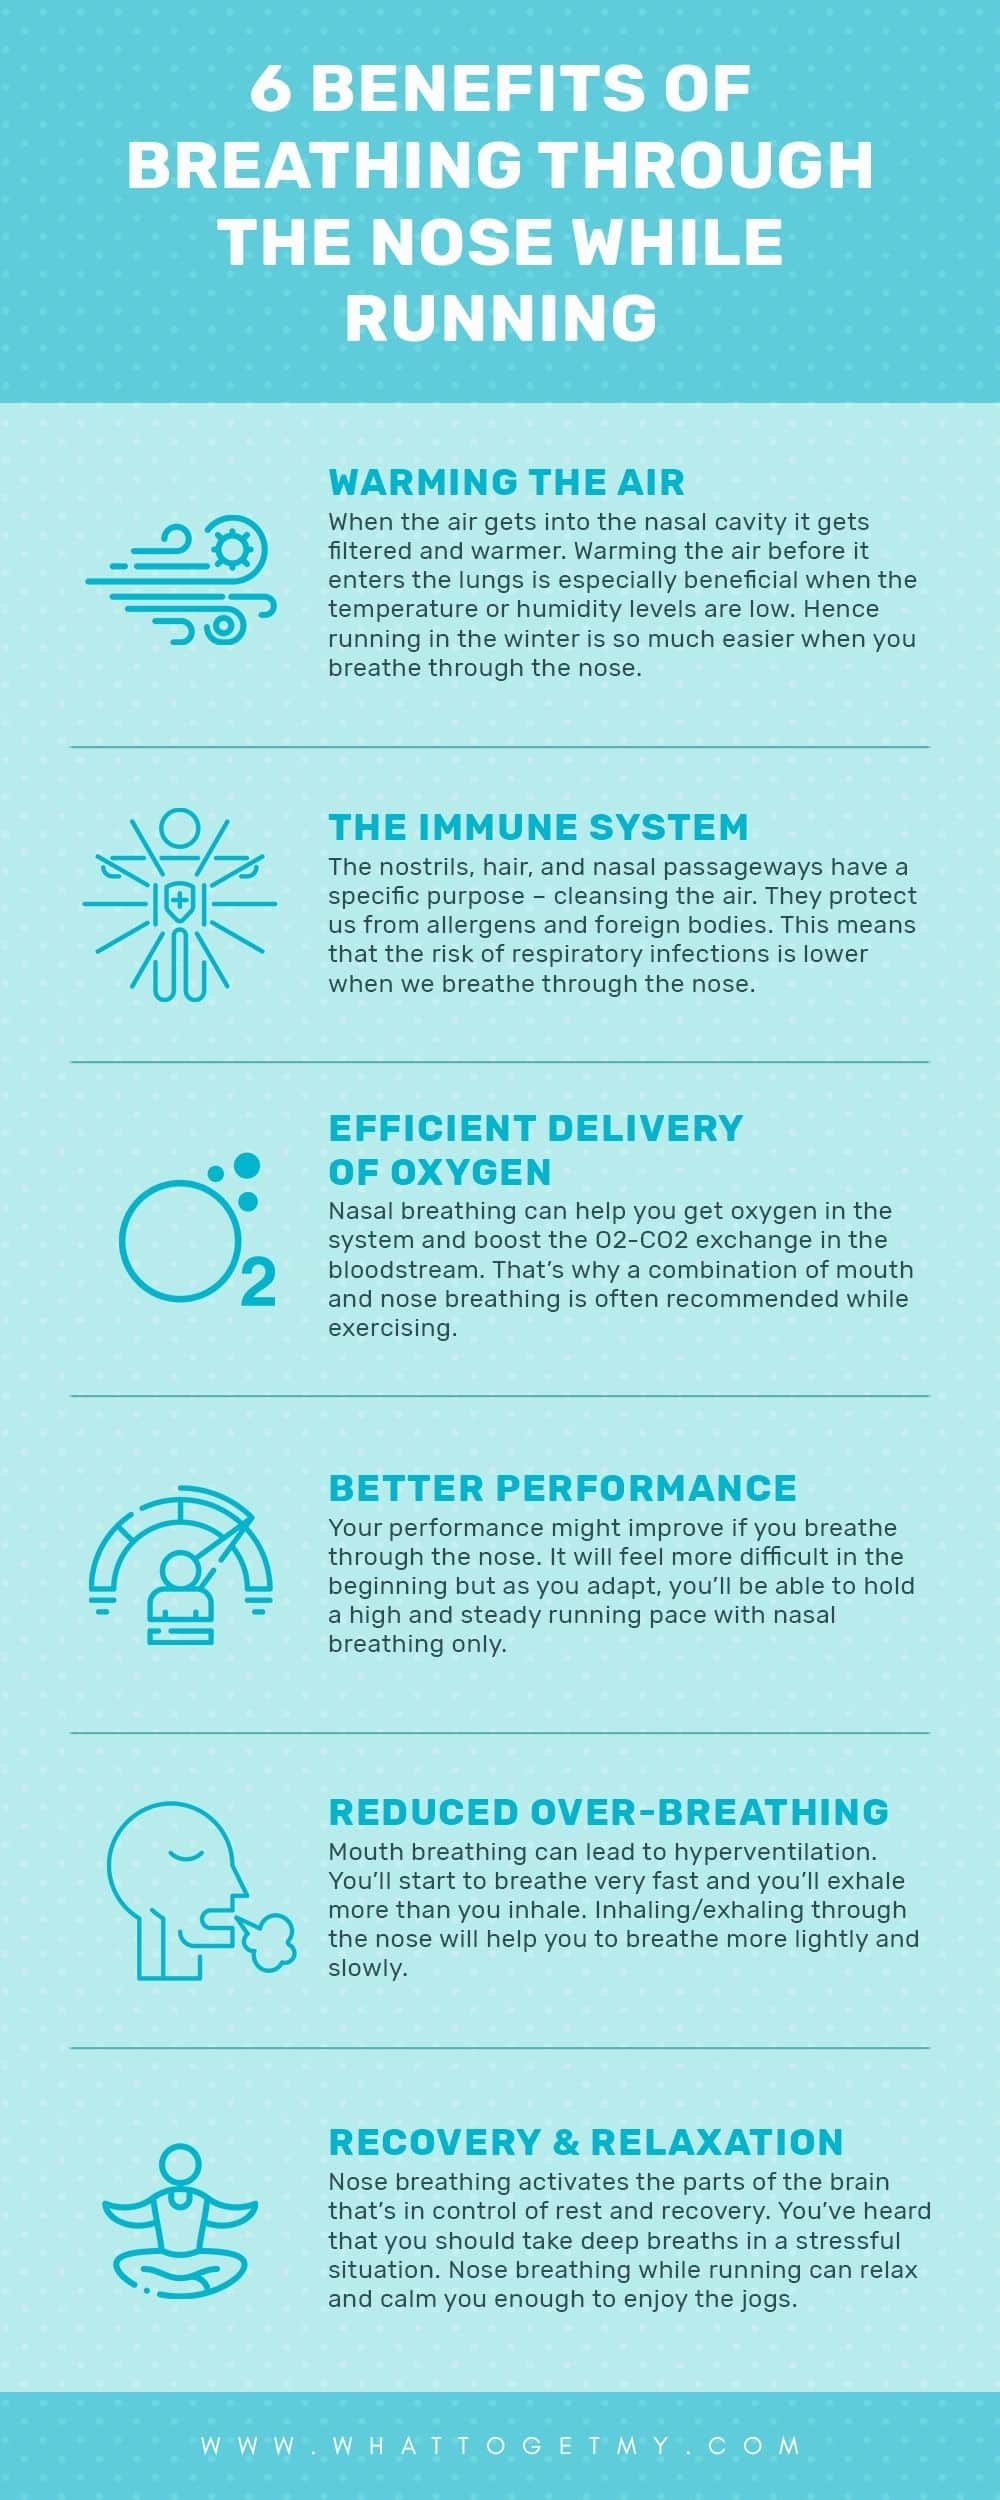 Infographic 6 Benefits of Breathing Through the Nose While Running